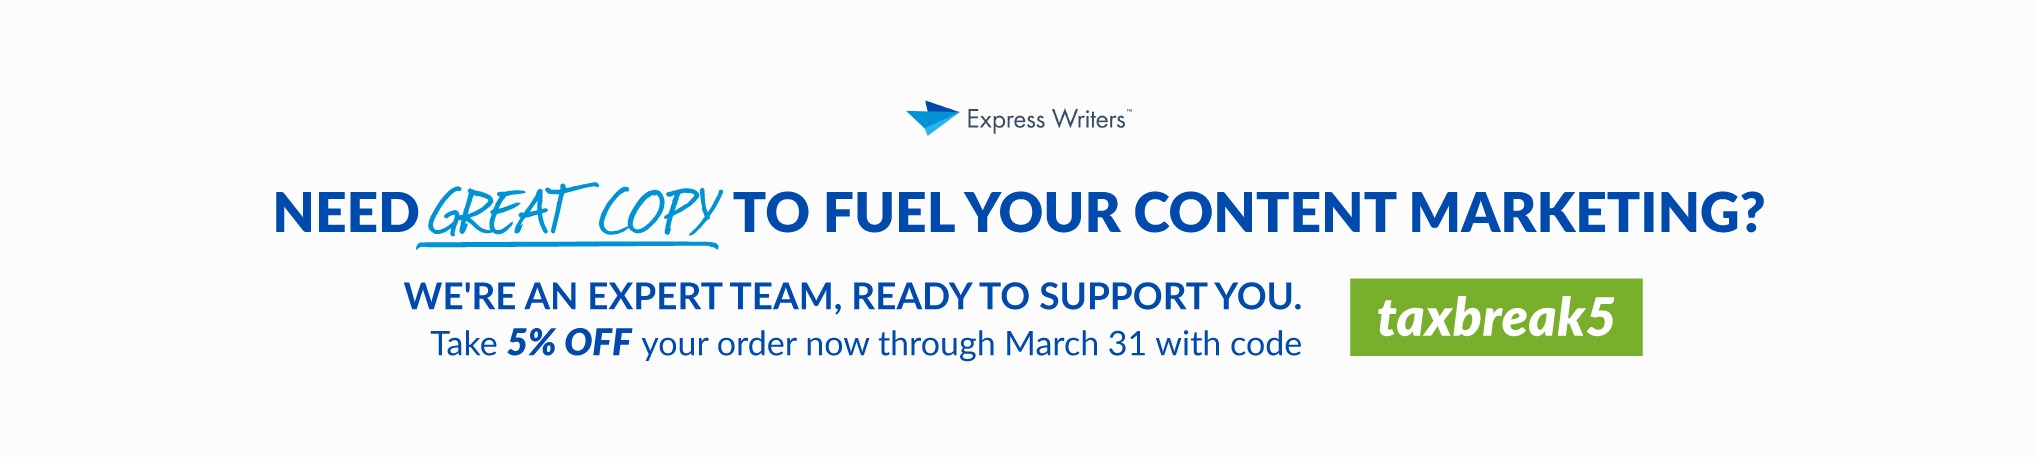 cta express writers